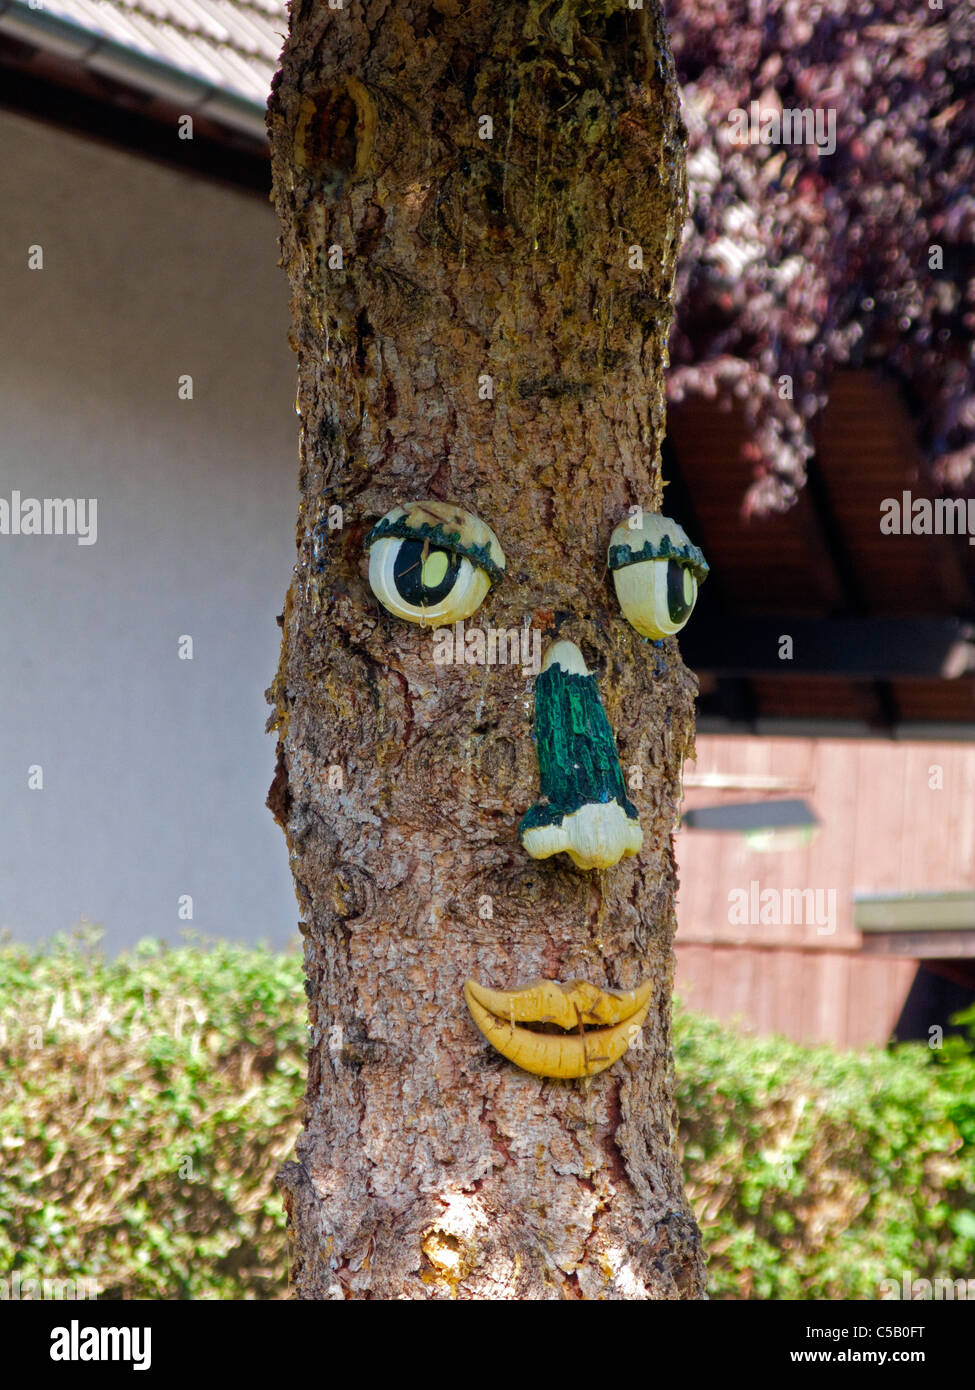 Baumgesicht in Bauerngarten, Sasbachwalden, Schwarzwald, tree face in Sasbachwalden, Black Forest - Stock Image